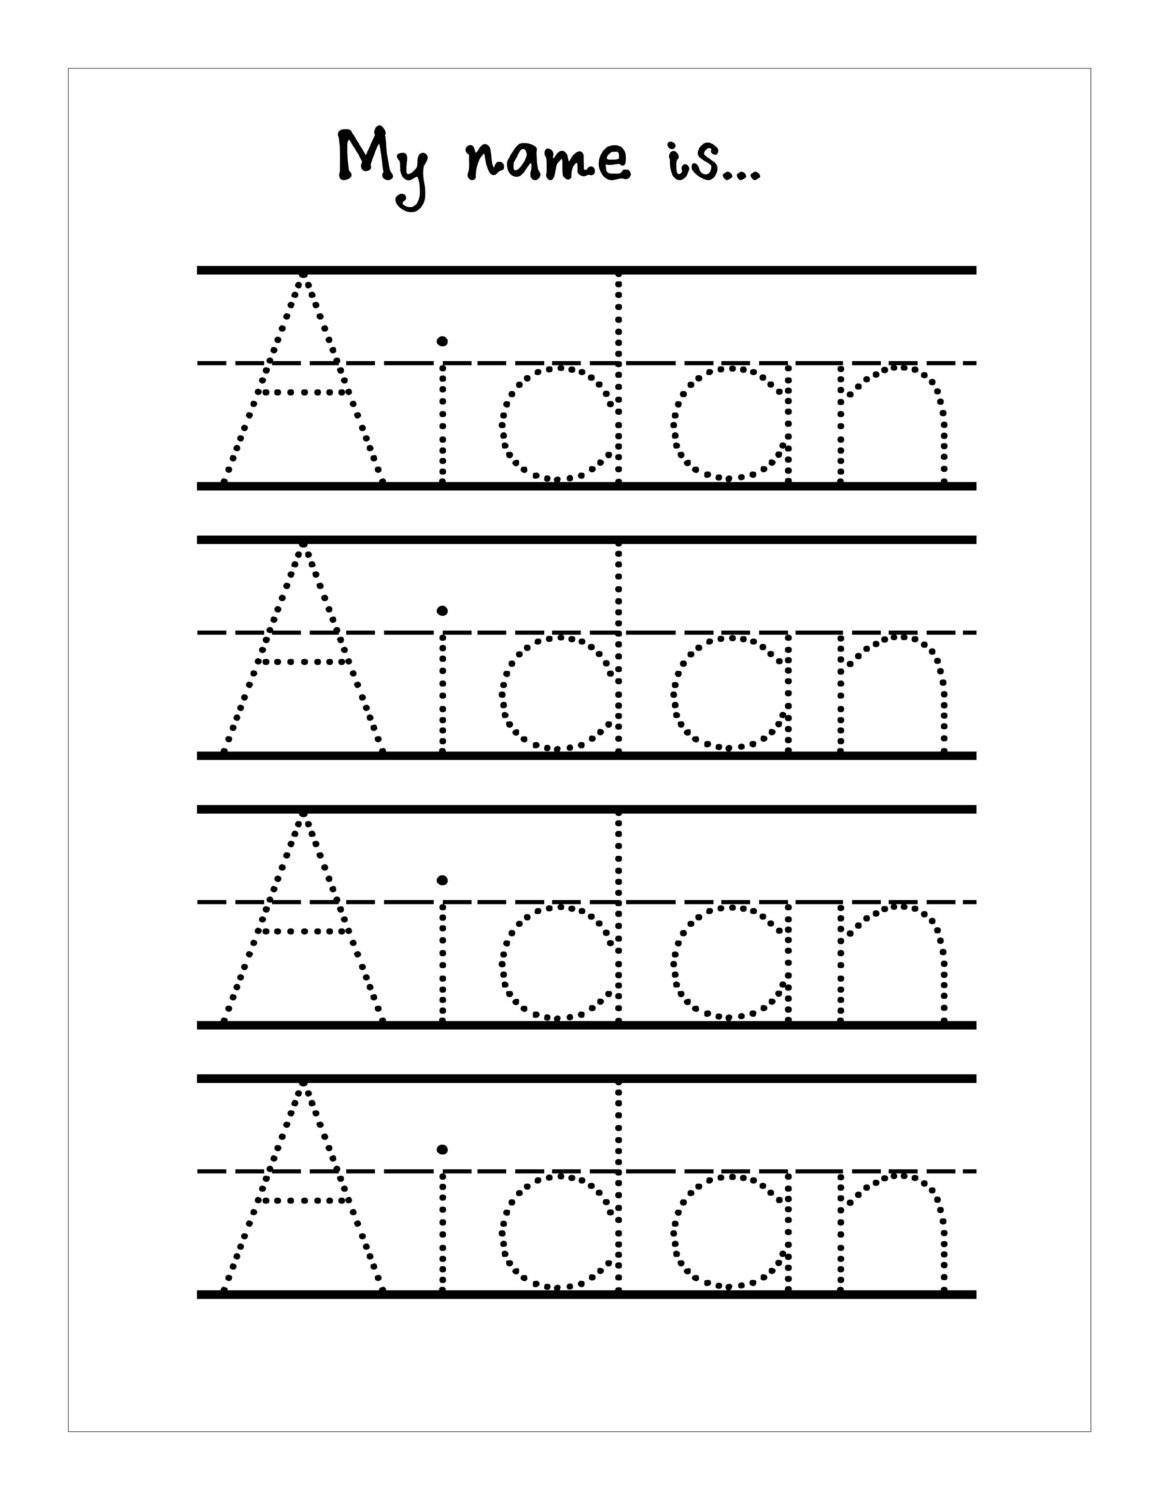 Alphabet Worksheet Creator | Printable Worksheets And for Alphabet Tracing Generator